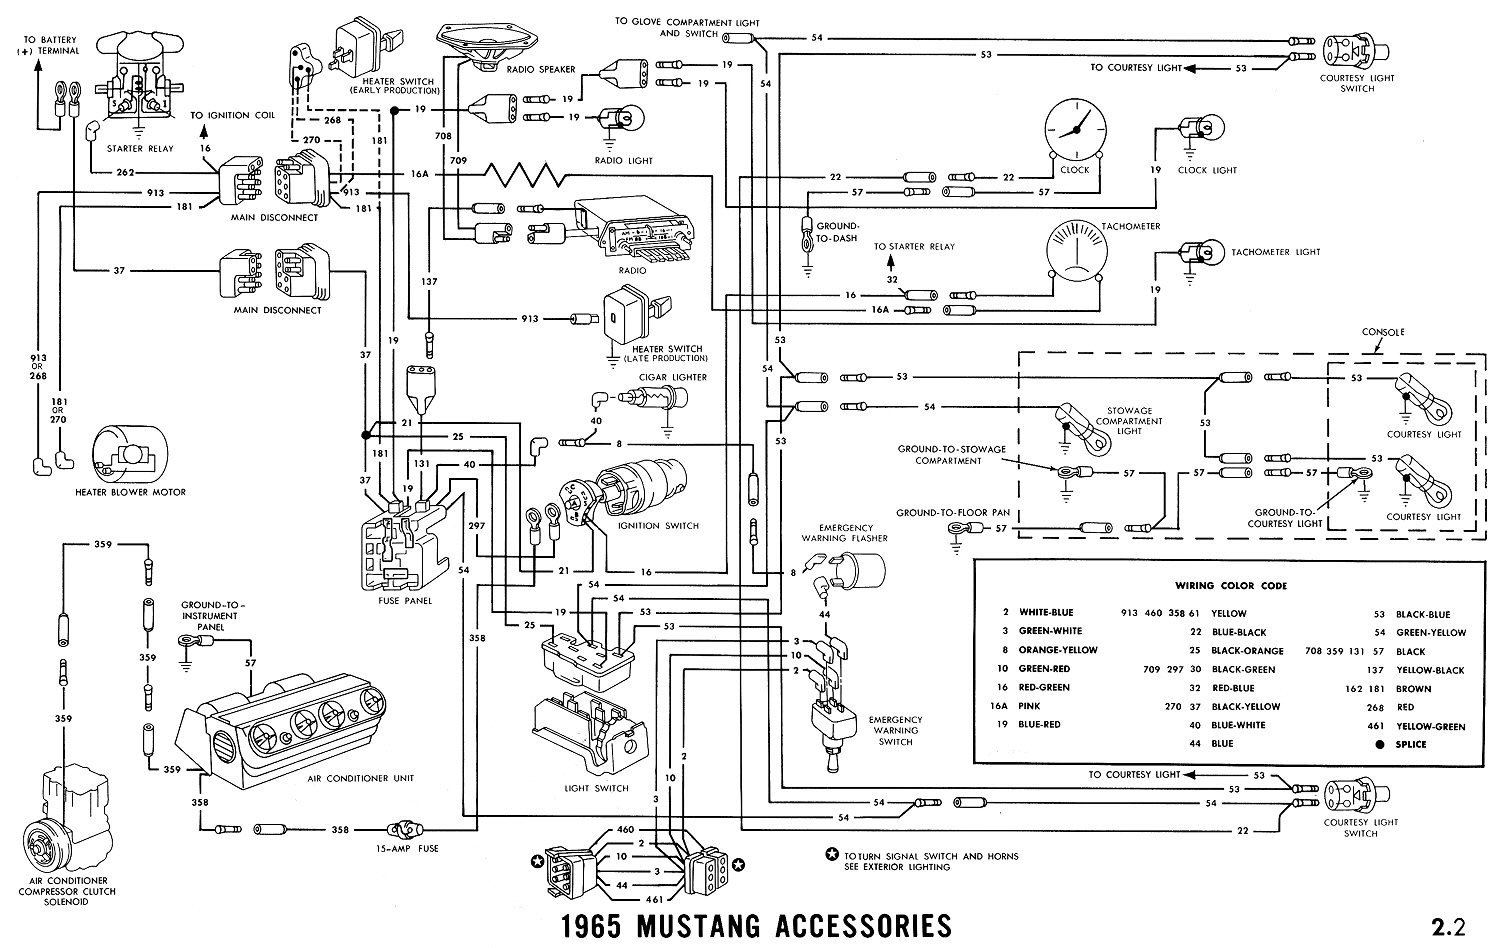 wiring diagram for 65 mustang wiring diagram sch1965 mustang wiring diagrams average joe restoration wiring diagram for 1965 mustang alternator 1965 mustang accessories